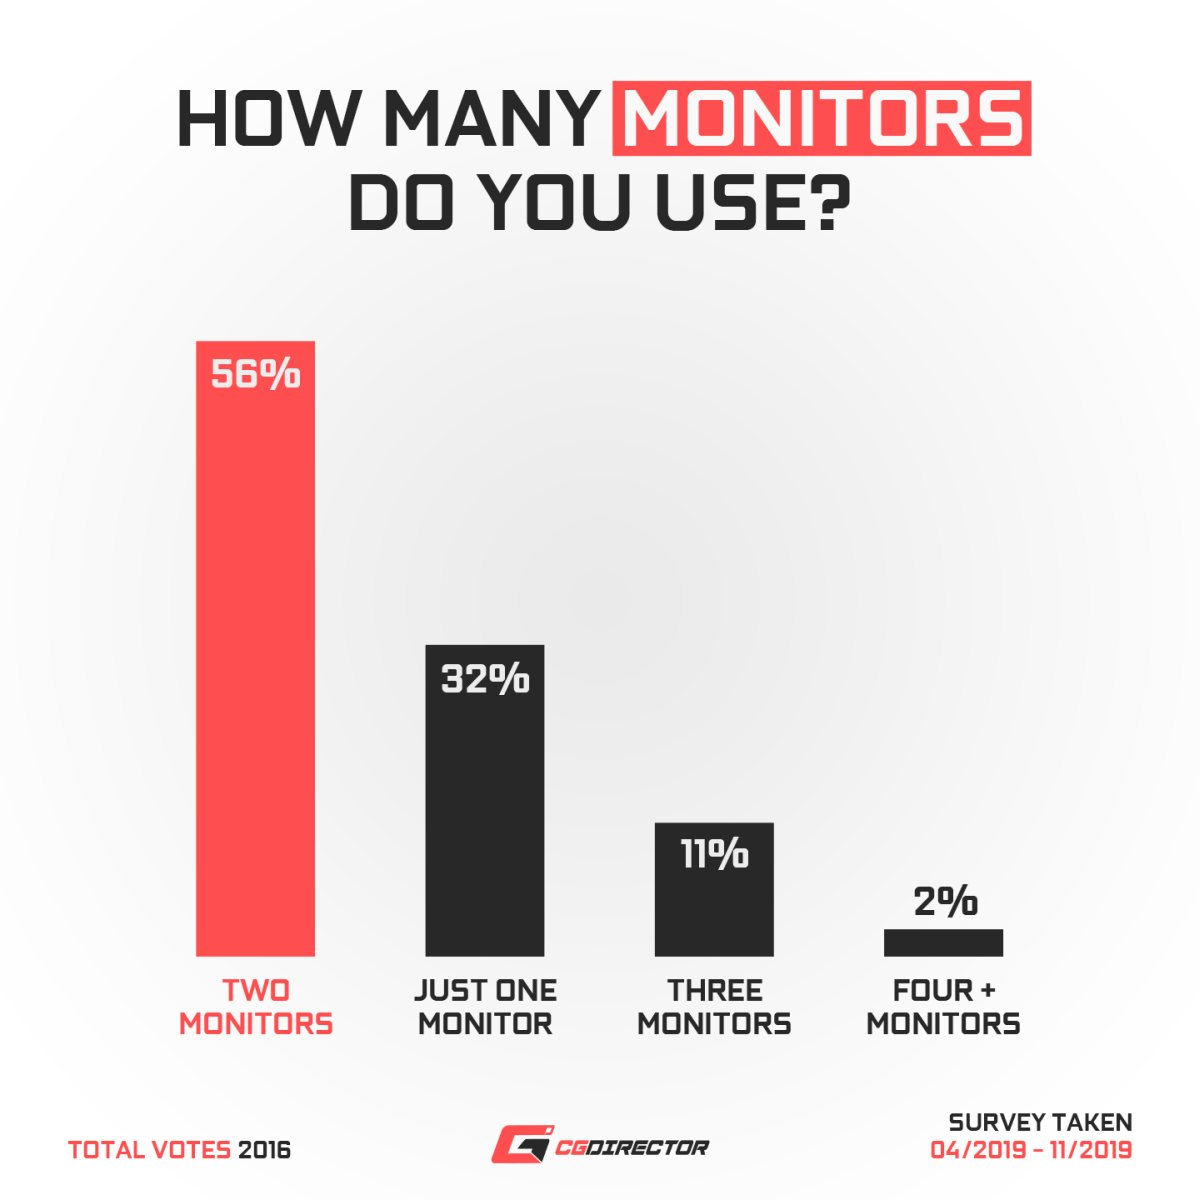 How many monitors do you use